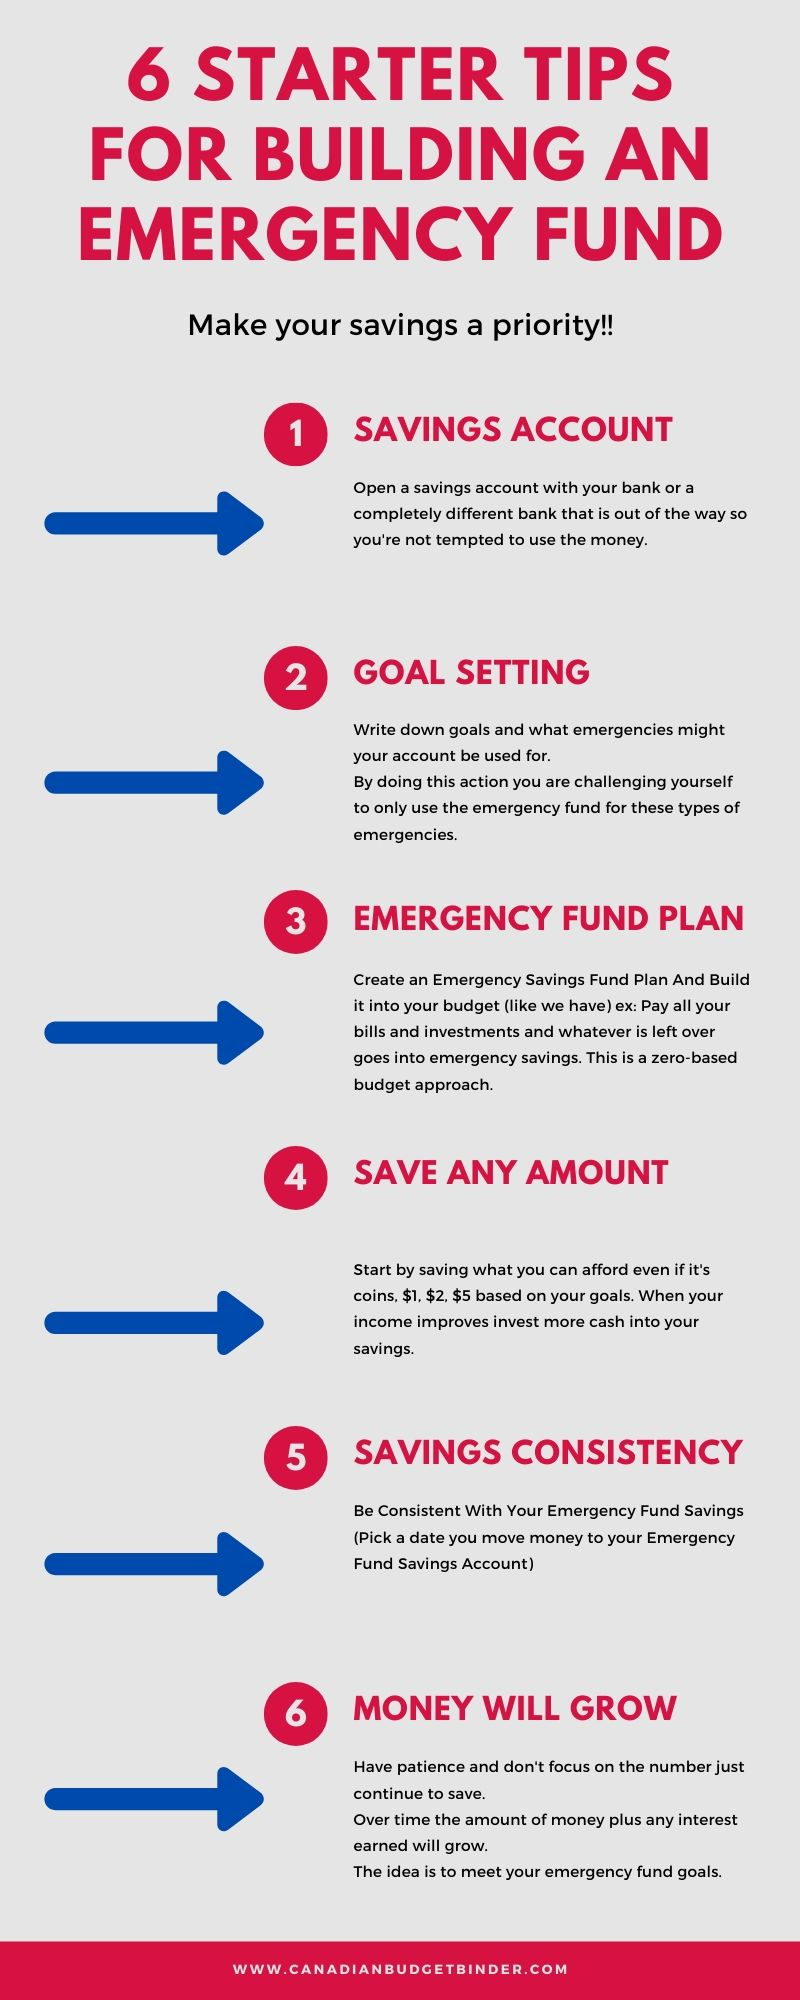 Emergency Fund Tips